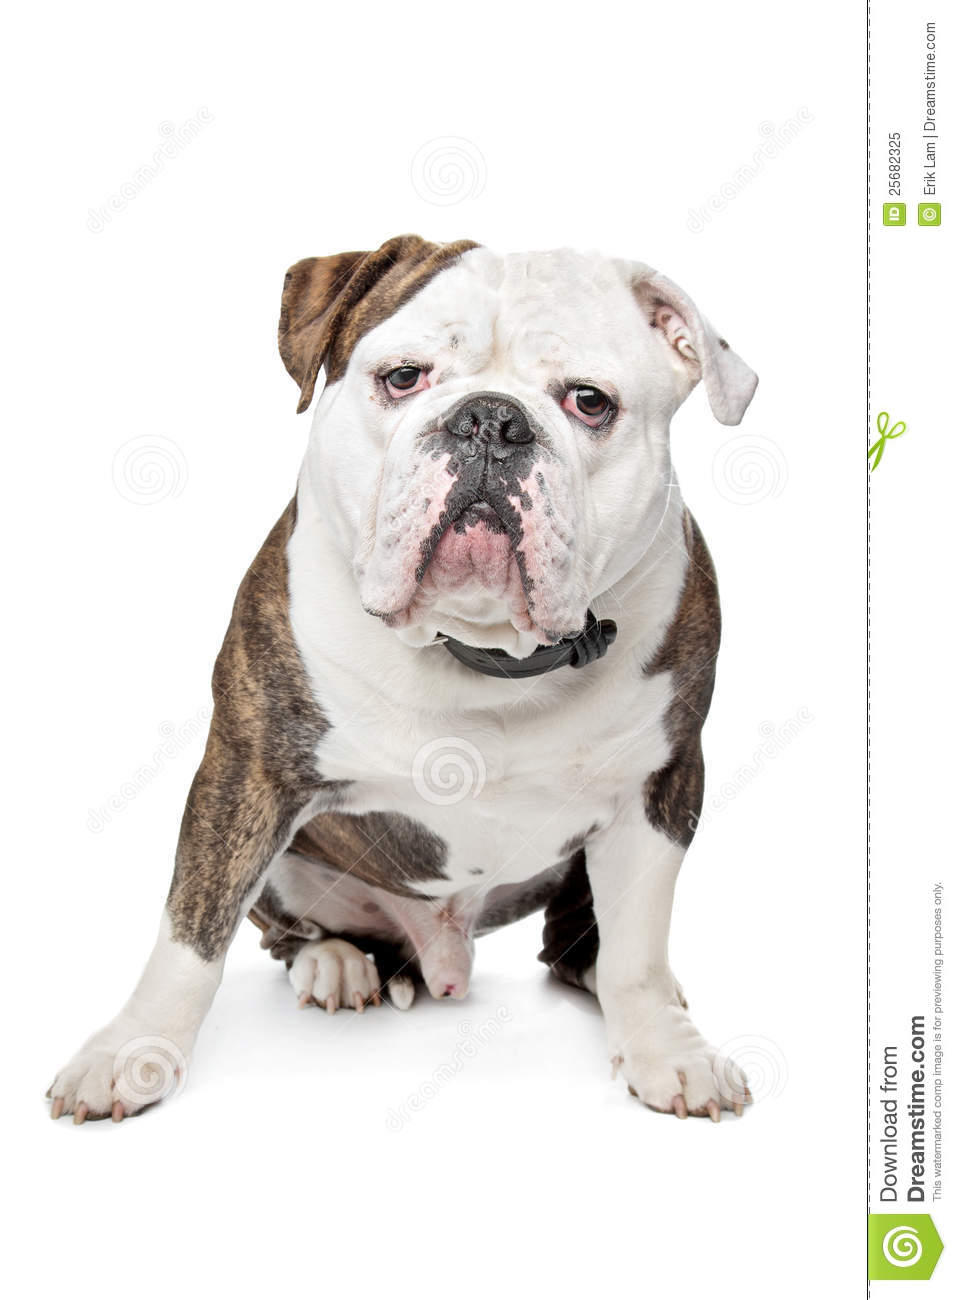 Old English Bulldog Royalty Free Stock Photo - Image: 25682325